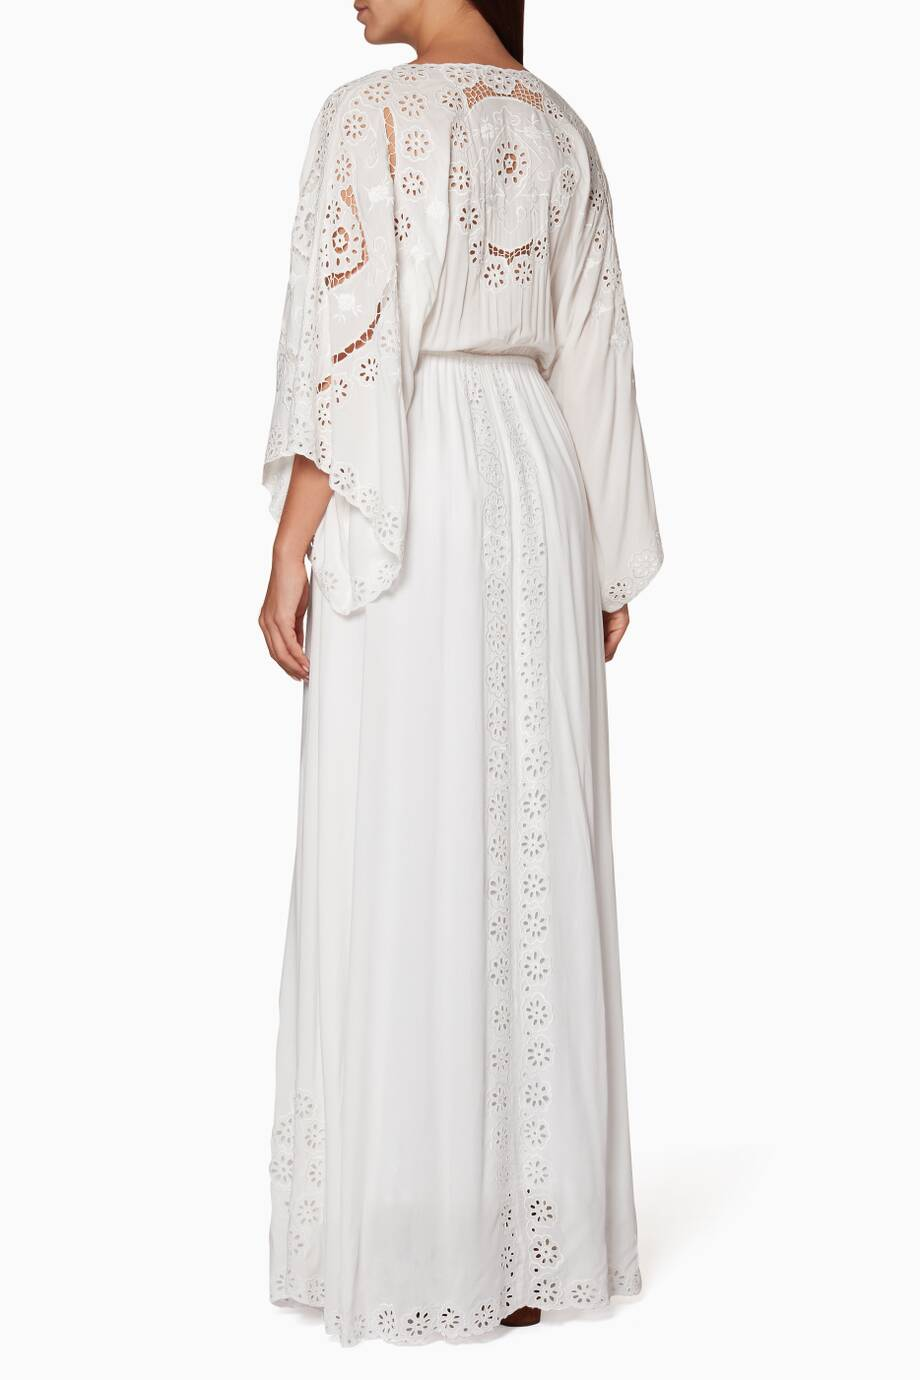 bed849fd0a4a9 Shop Luxury Fillyboo Ivory Cleo Duster Maxi Dress | Ounass Bahrain